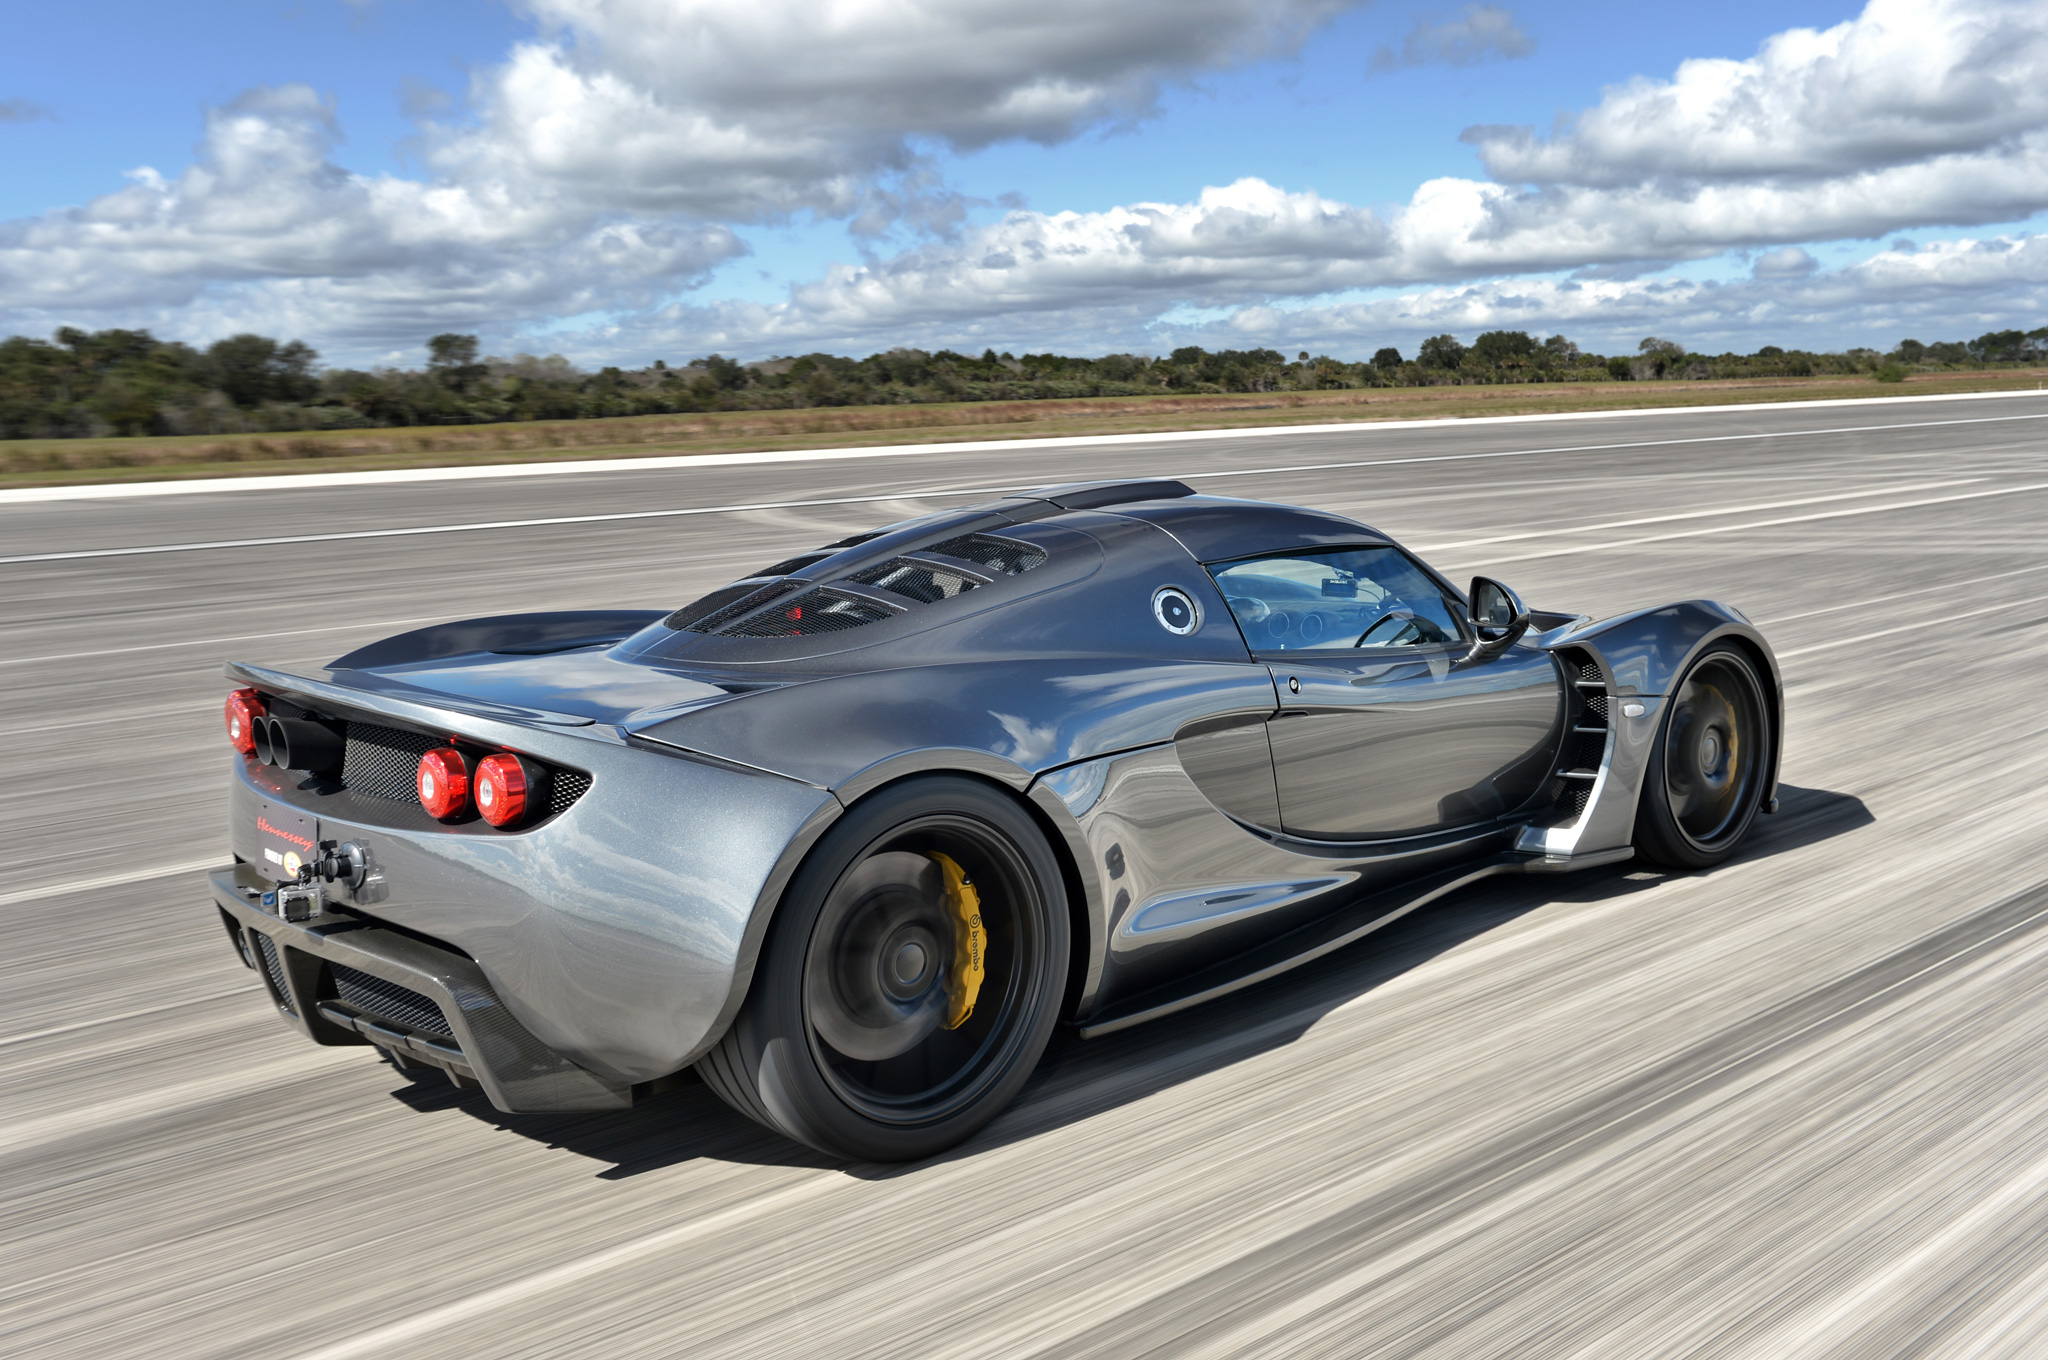 Hennessey Venom GT Hits 270.49 MPH, is Unofficial World's Fastest Car